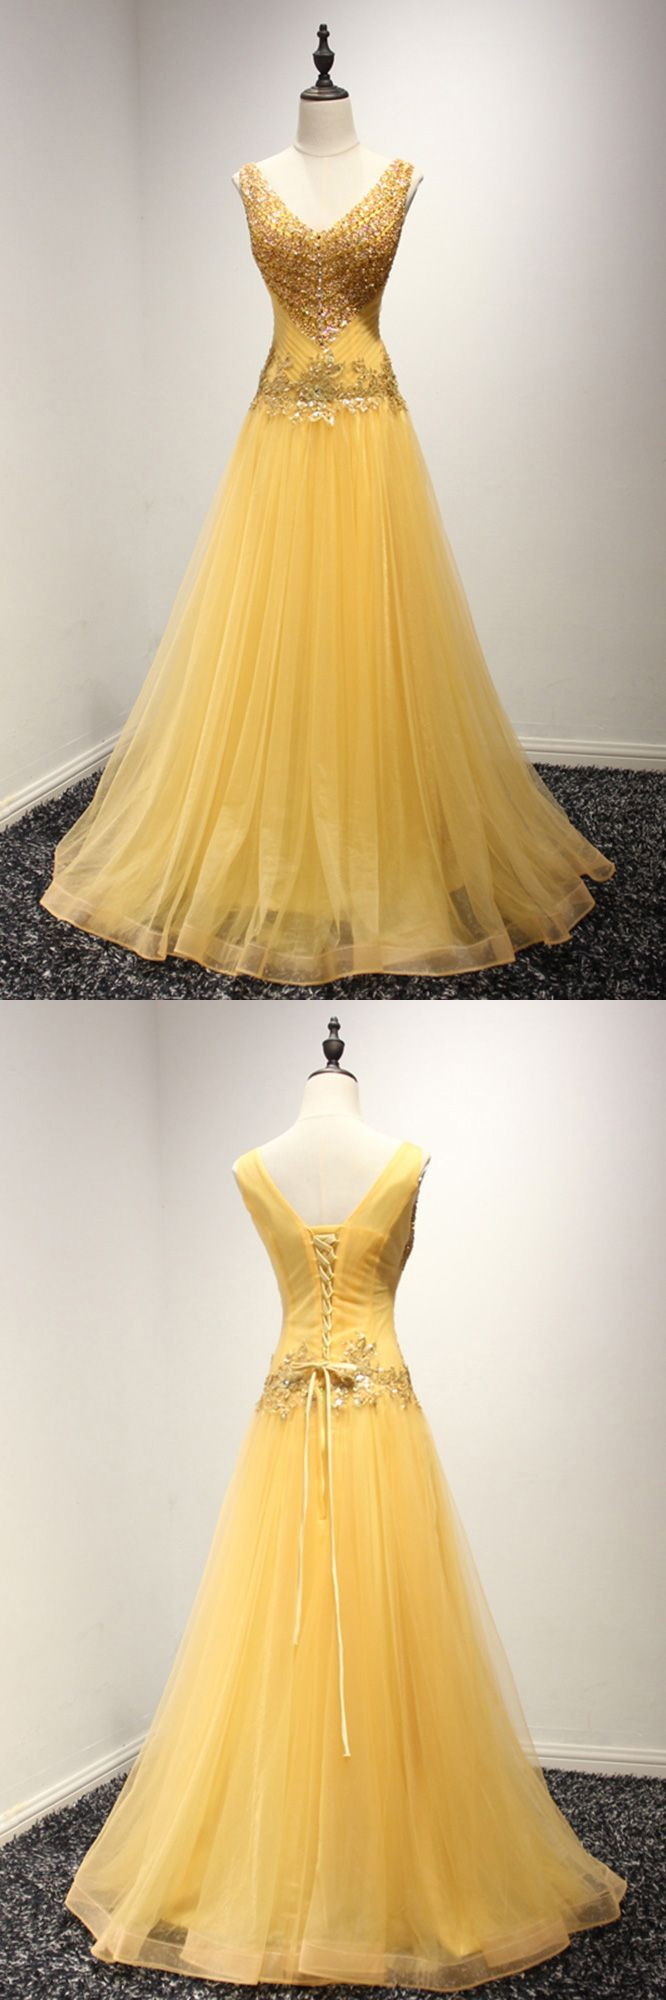 Only $169, Shining Sequined Gold Prom Dress Formal With Beading Sweetheart Neck #AKE18056 at #SheProm. SheProm is an online store with thousands of dresses, range from Prom,Formal,Evening,Gold,A Line Dresses,Sparkly Dresses,Sequin Dresses,Long Dresses,Customizable Dresses and so on. Not only selling formal dresses, more and more trendy dress styles will be updated daily to our store. With low price and high quality guaranteed, you will definitely like shopping from us. Shop now to get $10…